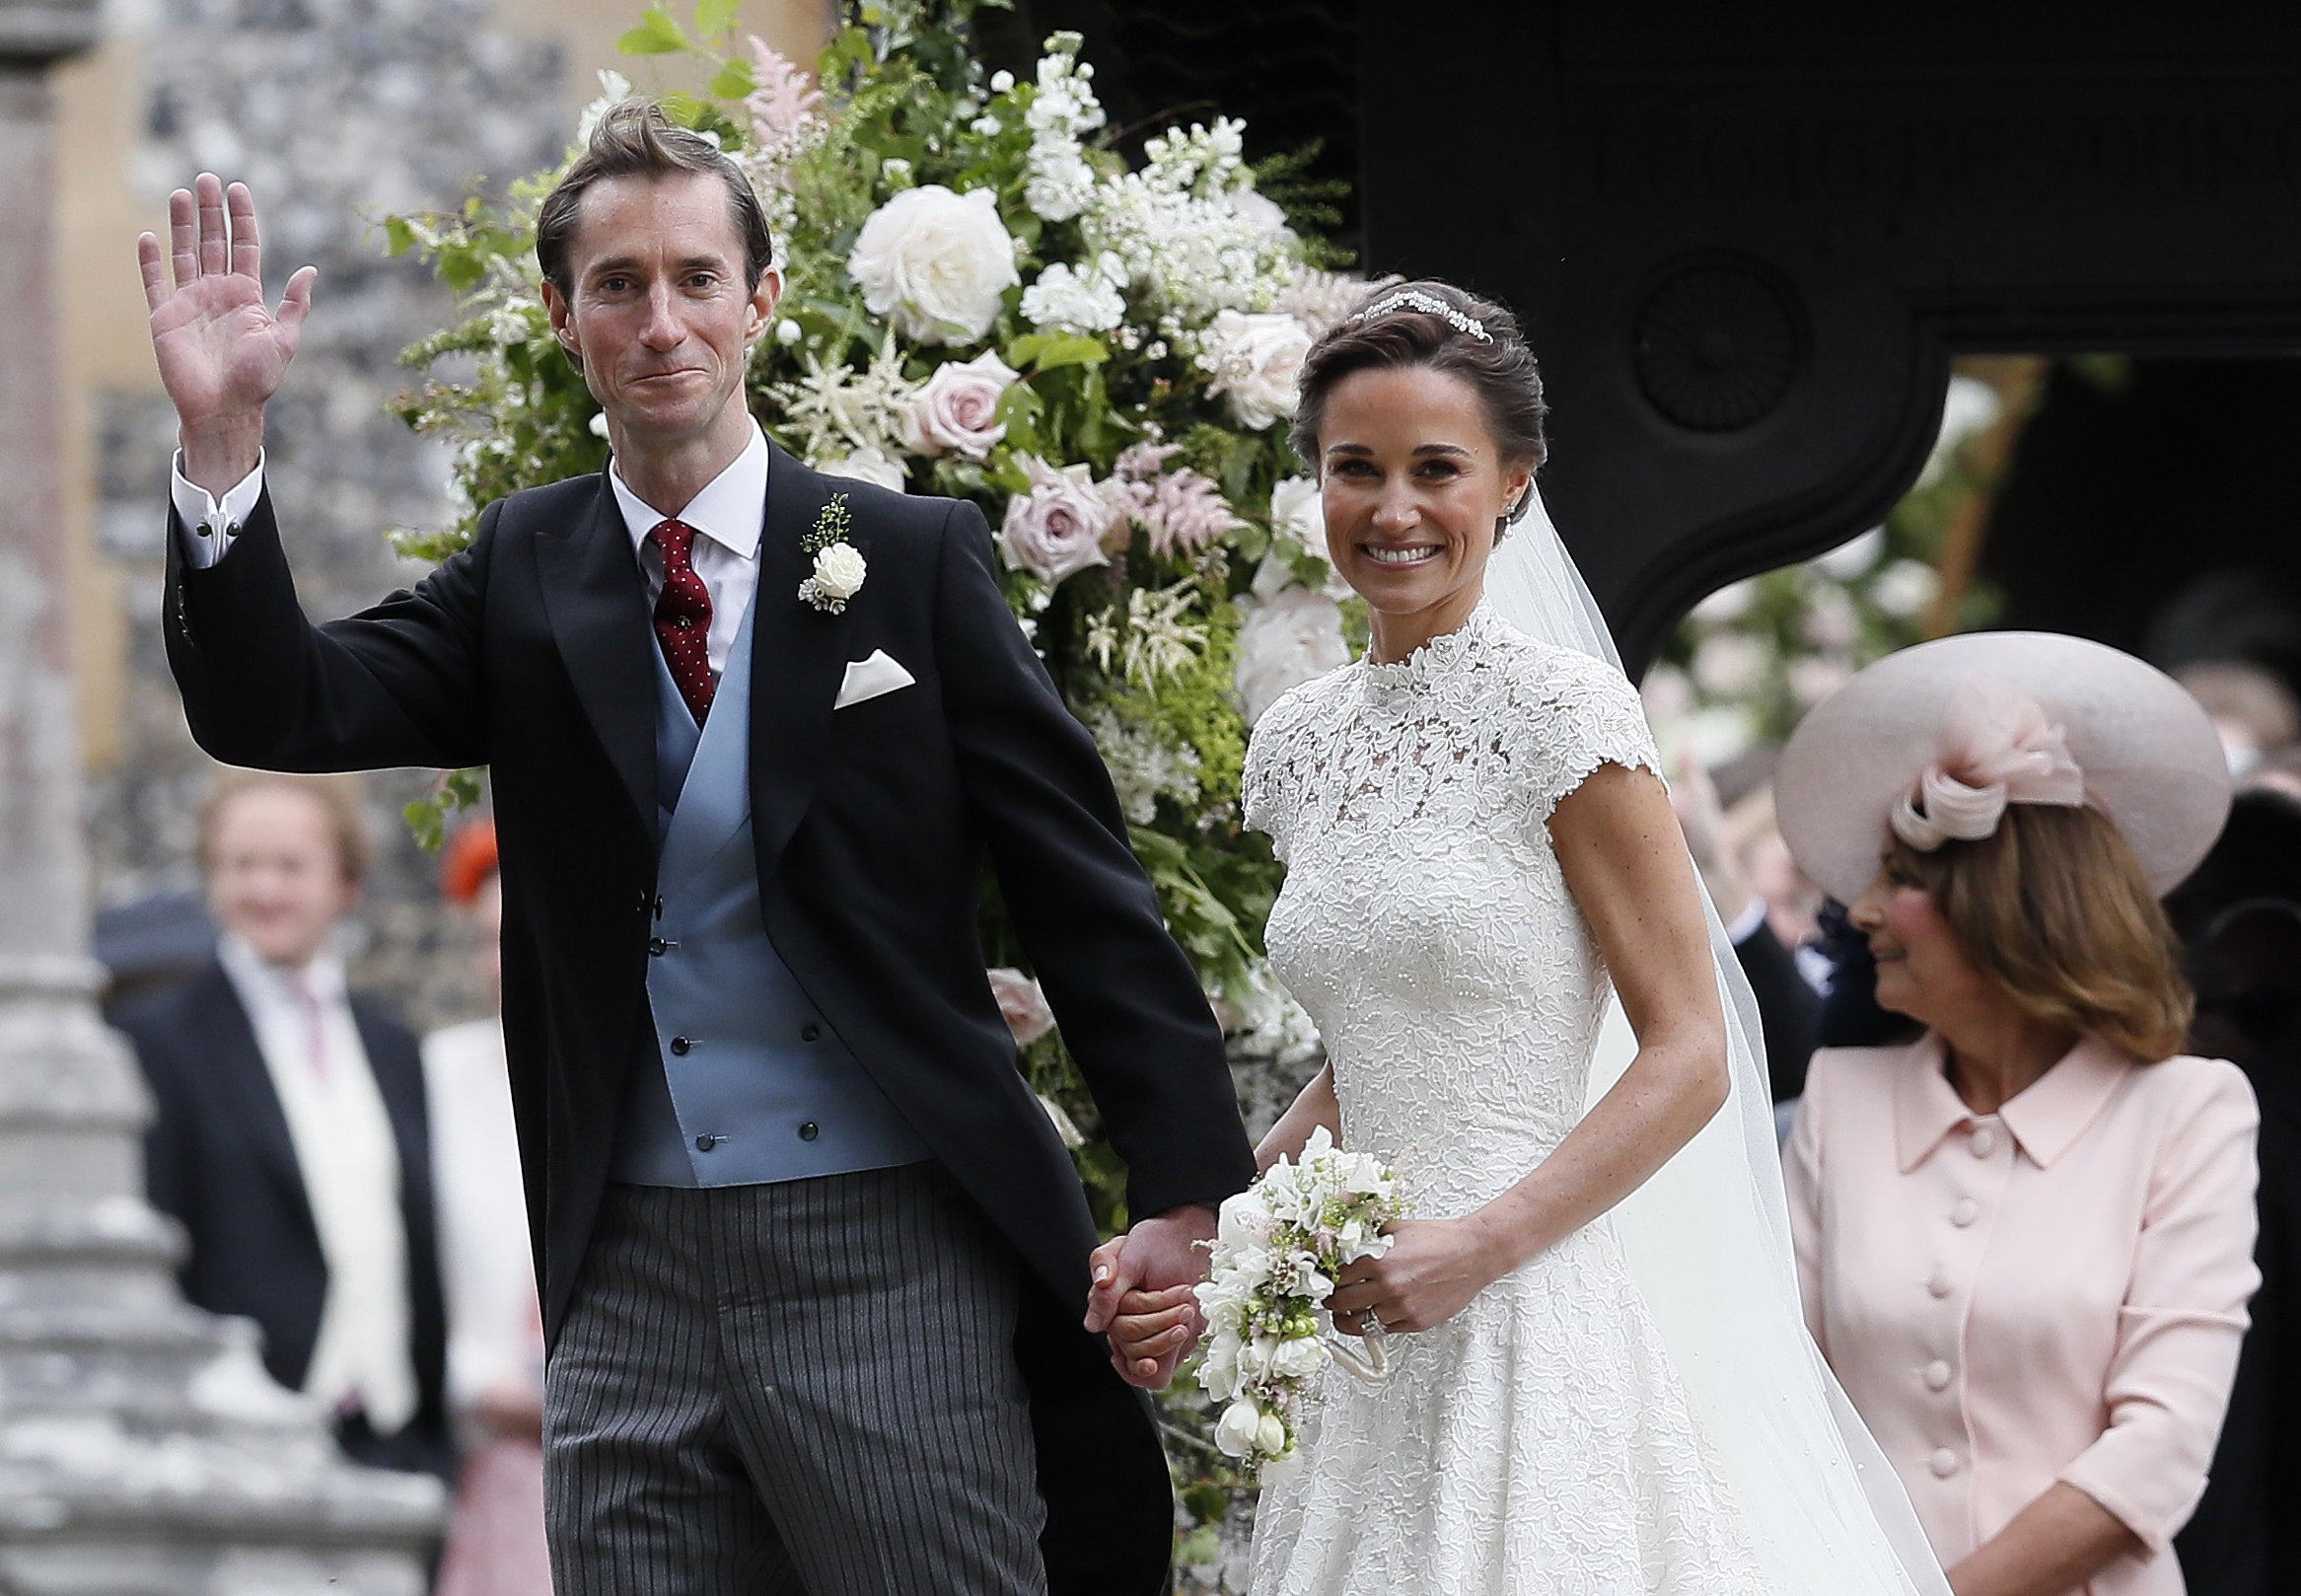 Pippa Middleton and James Matthews smile for the cameras after their wedding at St Mark's Church | Source: Getty Images